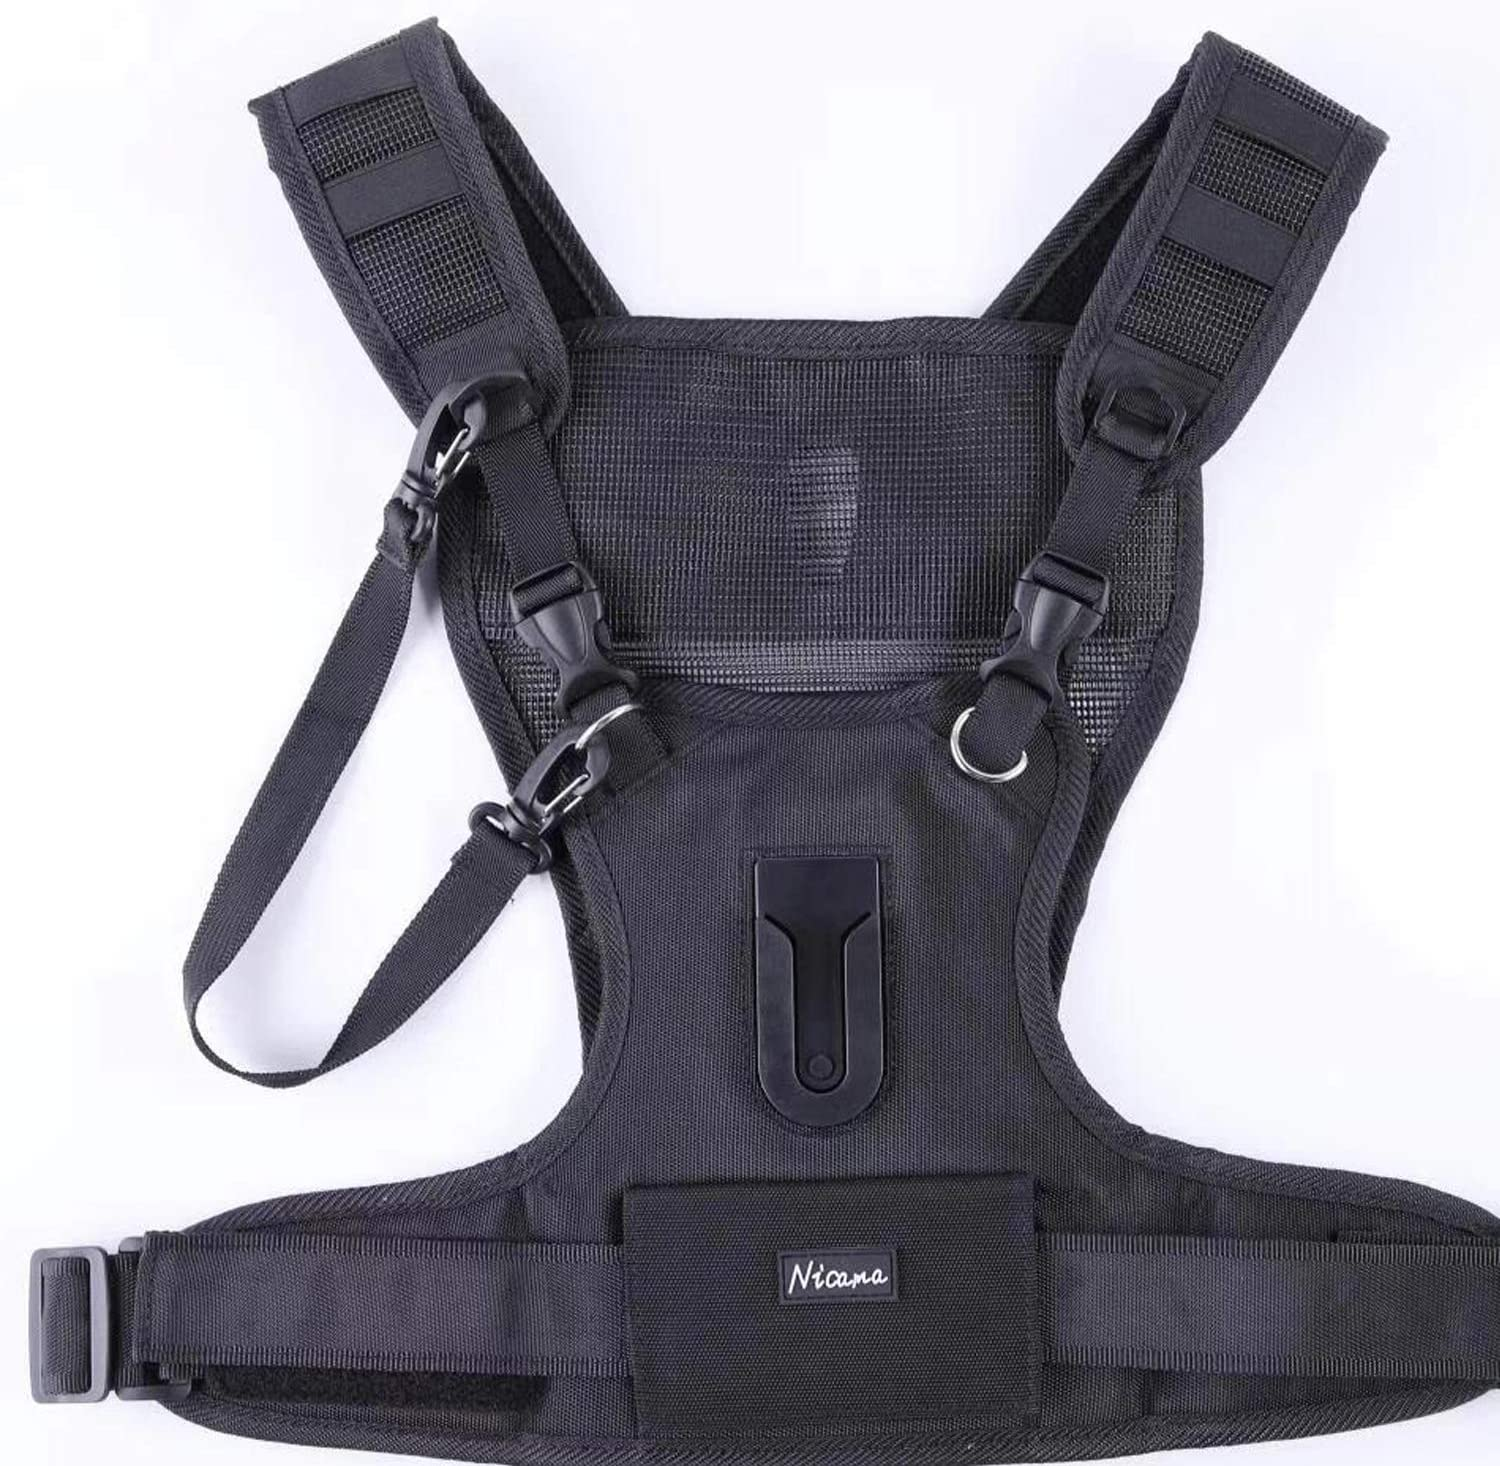 Nicama Camera Strap Carrier Chest Harness Vest with Mounting Hubs /& Backup Safety Straps for Hiking Canon 6D 5D2 5D3 Nikon D800 D810 Sony A7S A7R A7S2 Sigma Olympus DSLR Cameras